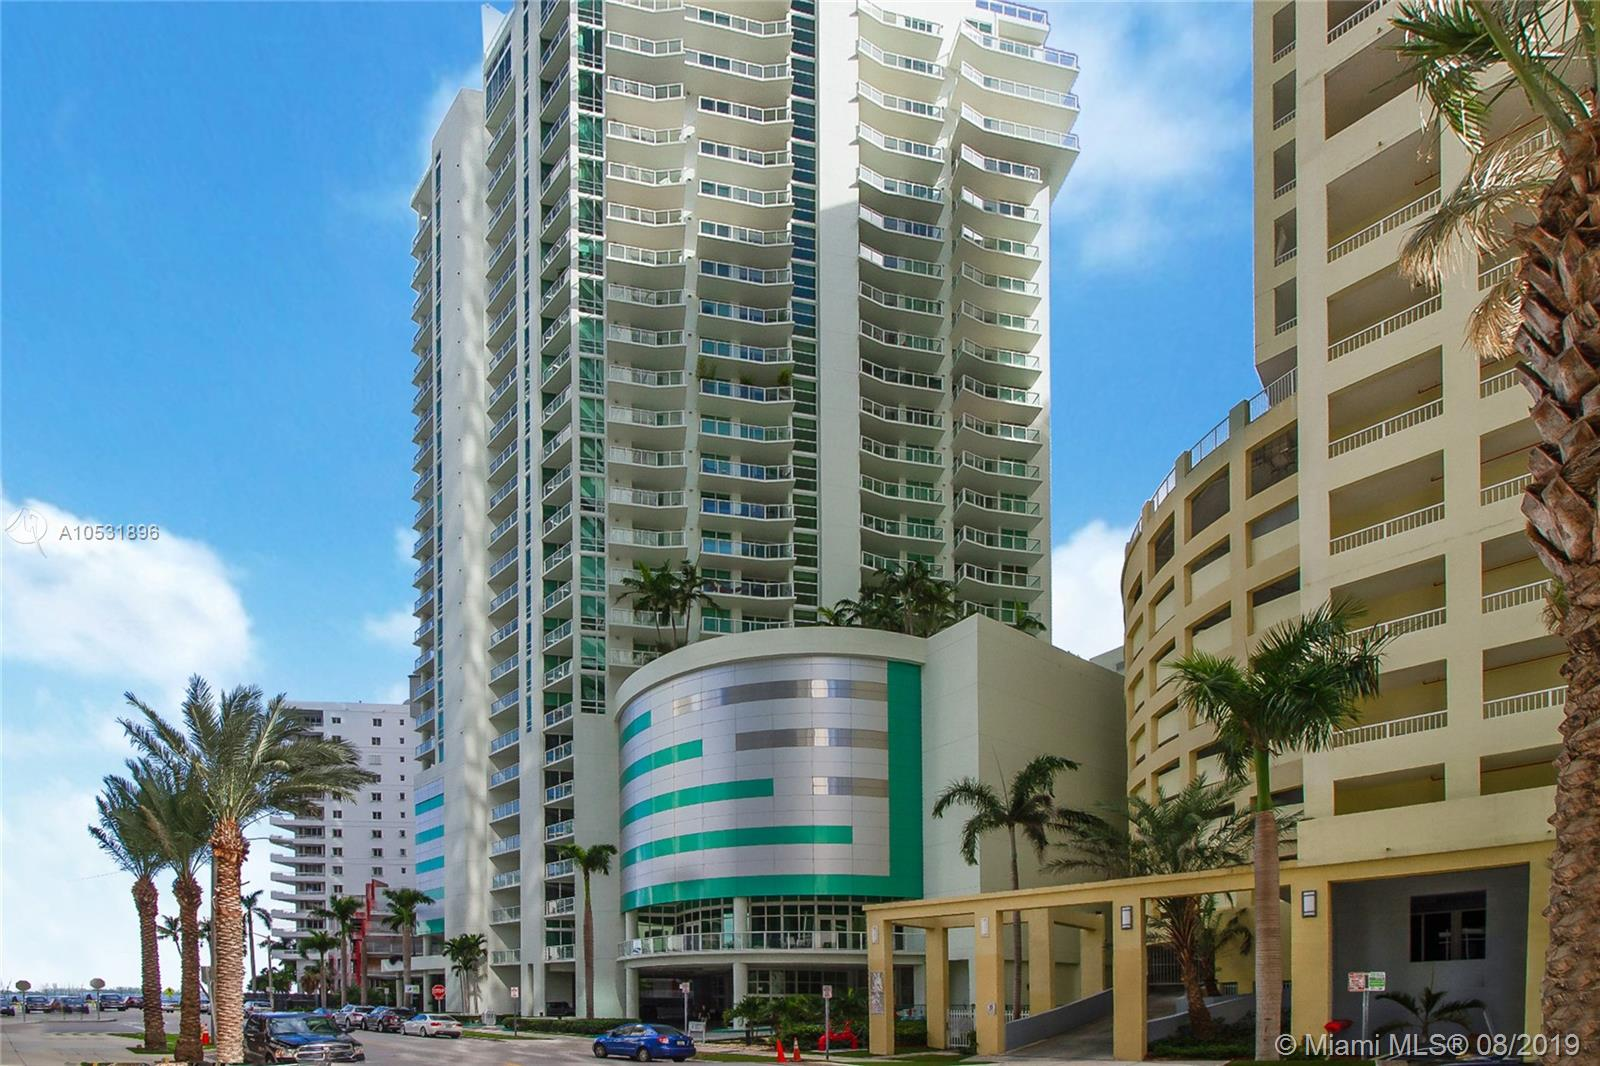 218 SE 14th St, Miami, Fl 33131, Emerald at Brickell #2305, Brickell, Miami A10531896 image #1